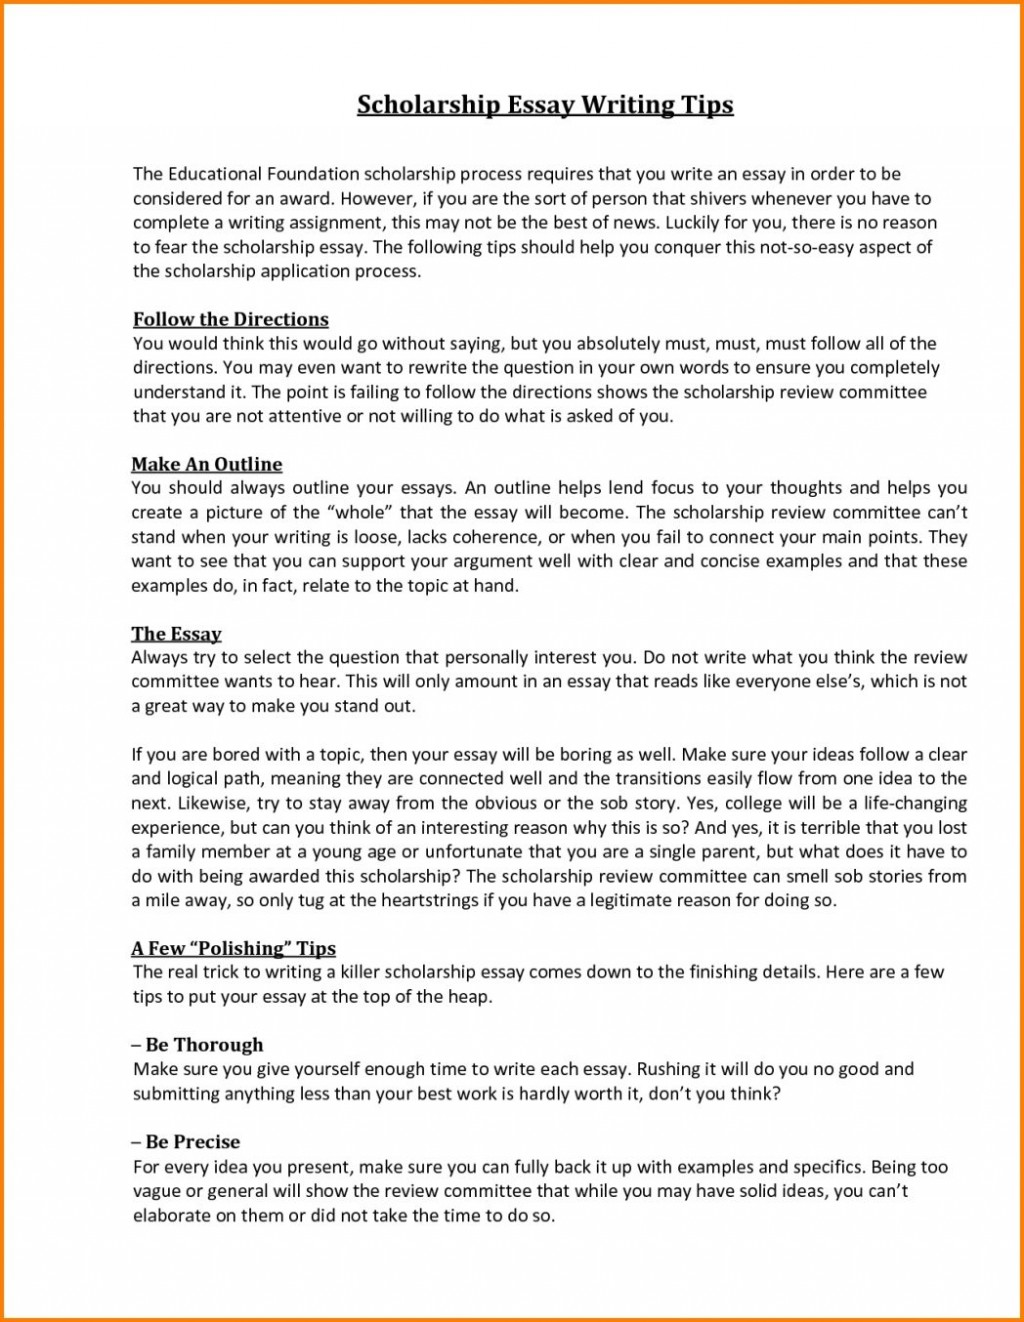 006 Examples Of Scholarship Essays On Financial Need Essay Writings And Aboutyself An With Rega Pdf Citations Foriddle School Introduction College High Sat Best Large